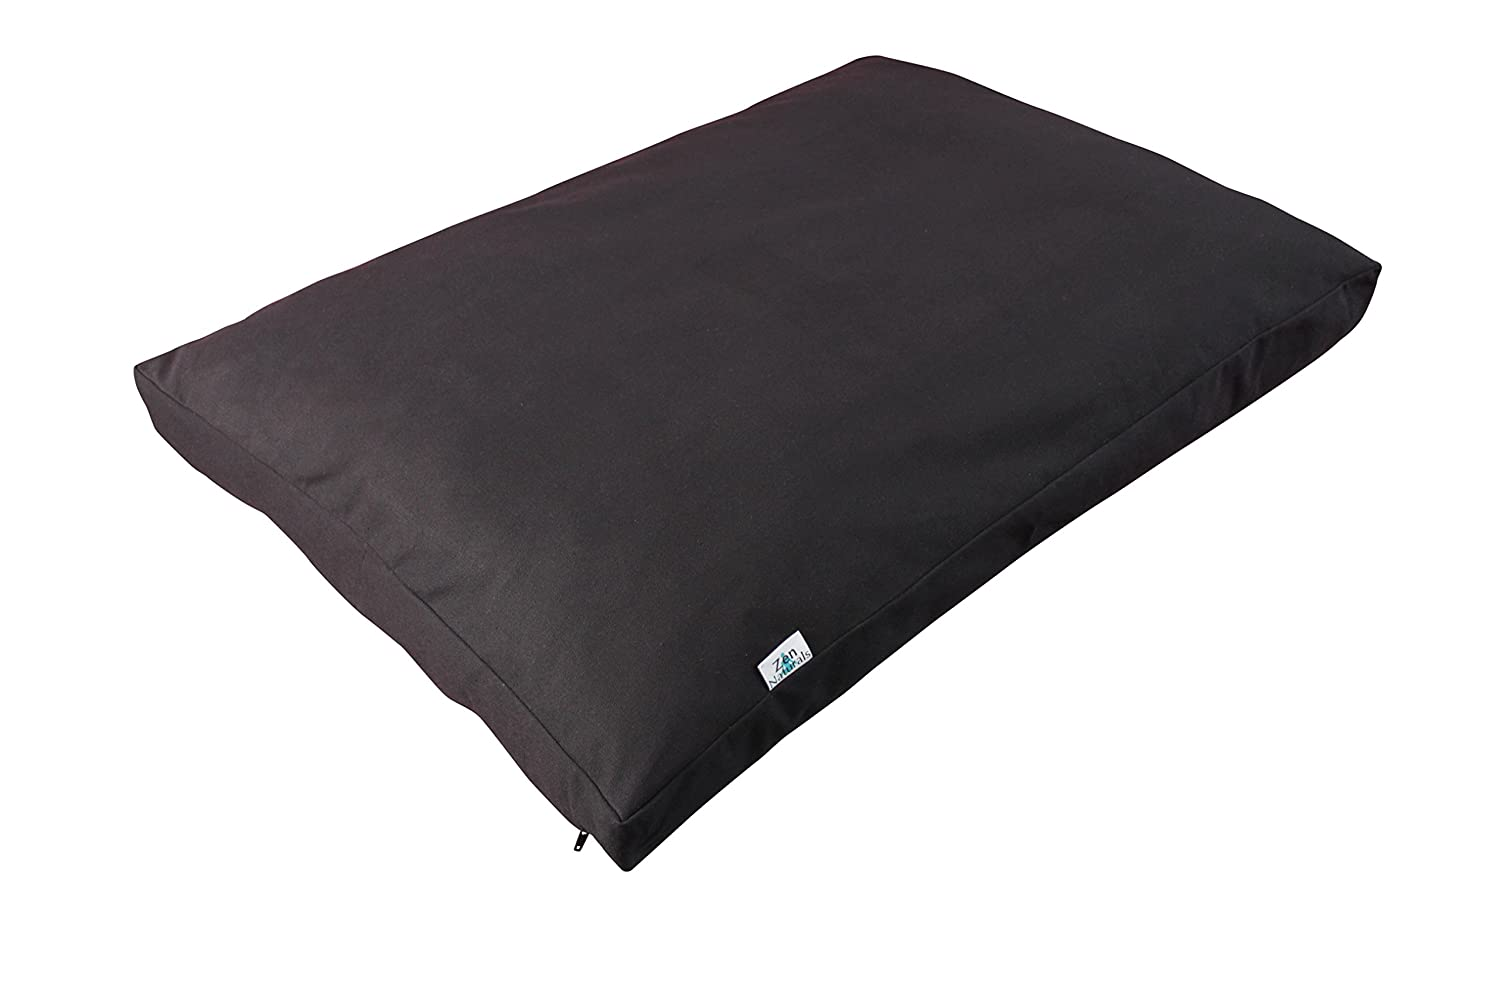 Top 5 Best Meditation Cushion Reviews in 2020 5